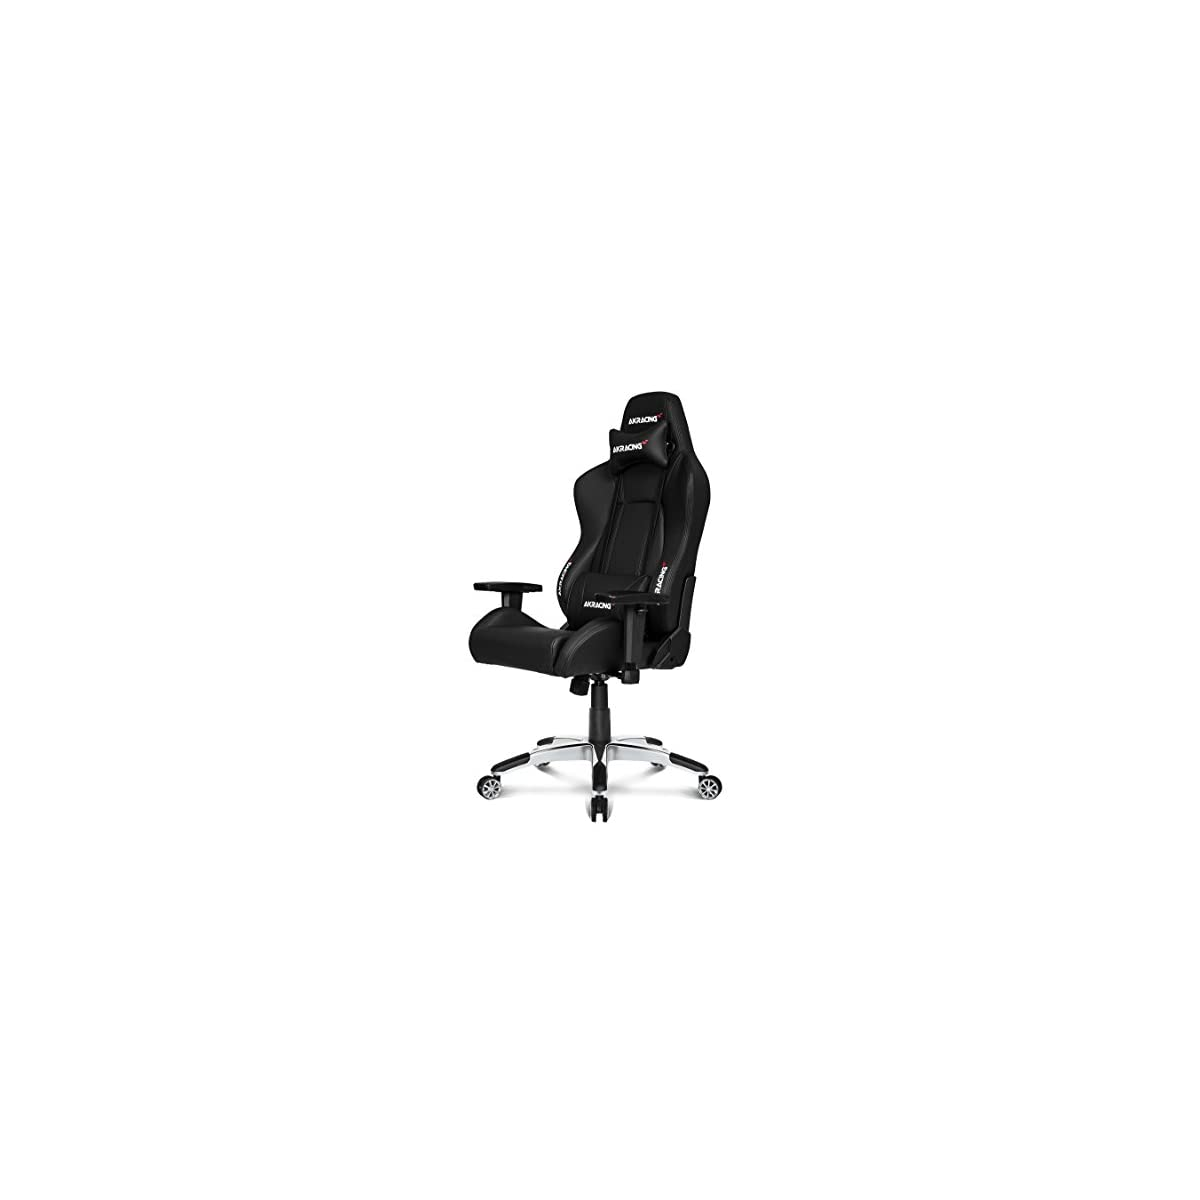 41oQKoGVBwL. SS1200  - AKRacing Premium V2 - AK-7002-BB - Silla Gaming, Color Negro